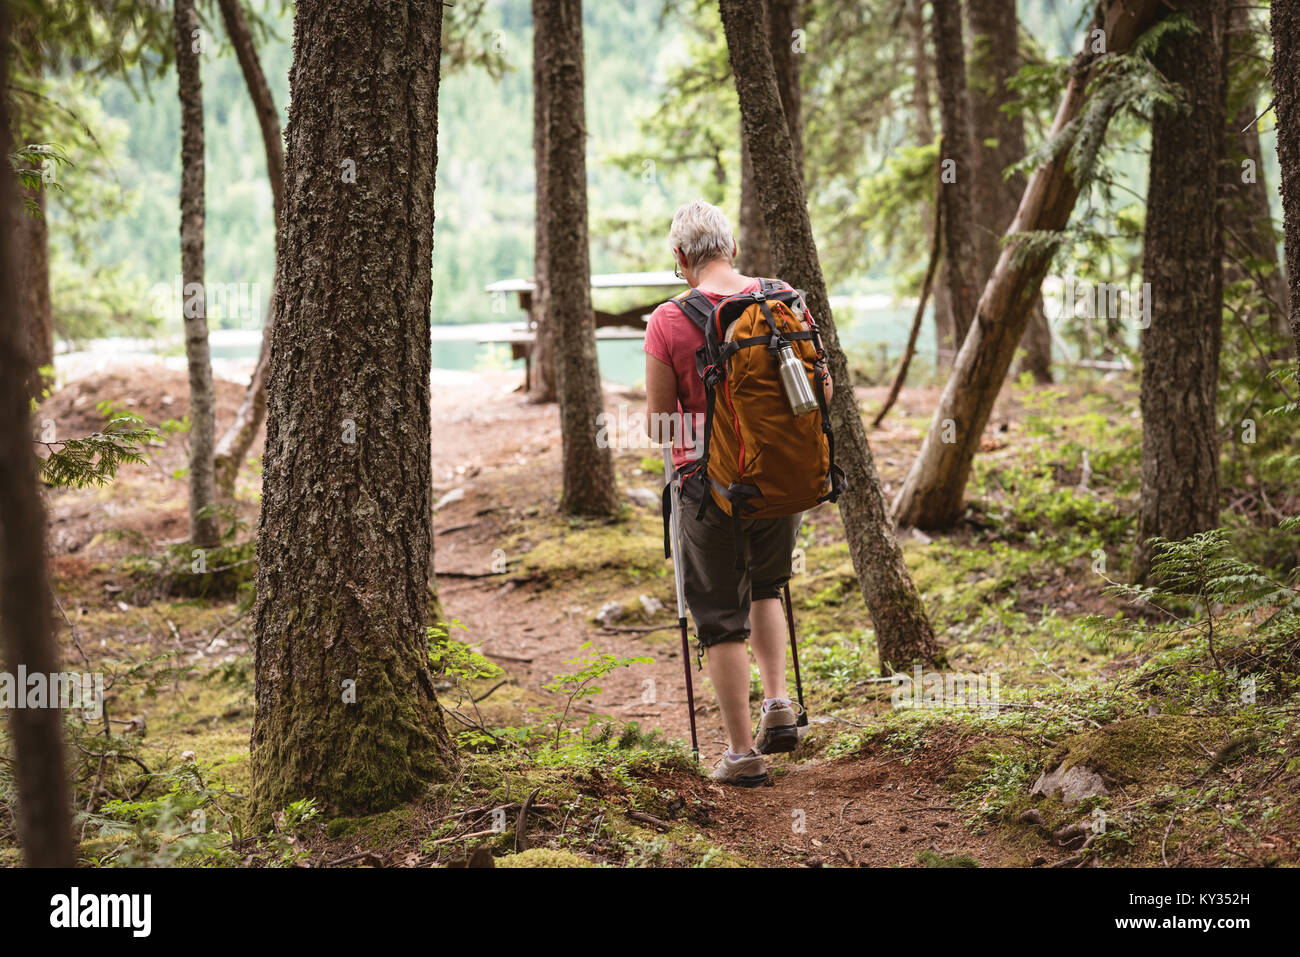 Young woman hiking in forest Photo Stock